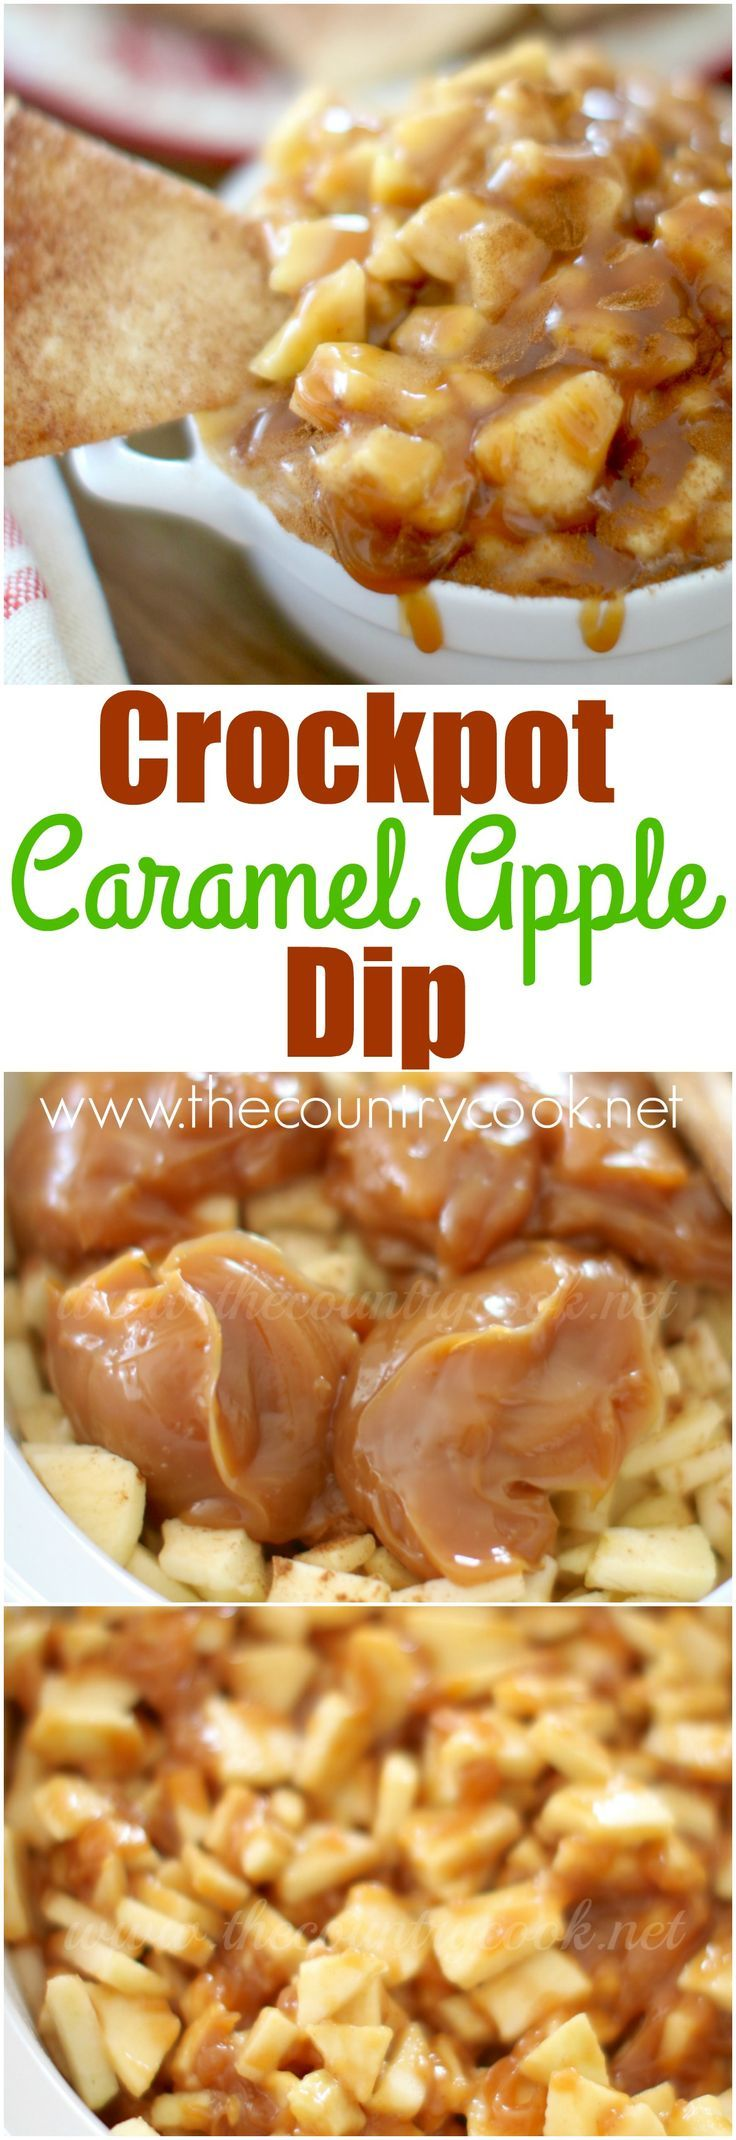 Crock Pot Caramel Apple Dip RecipesCrock